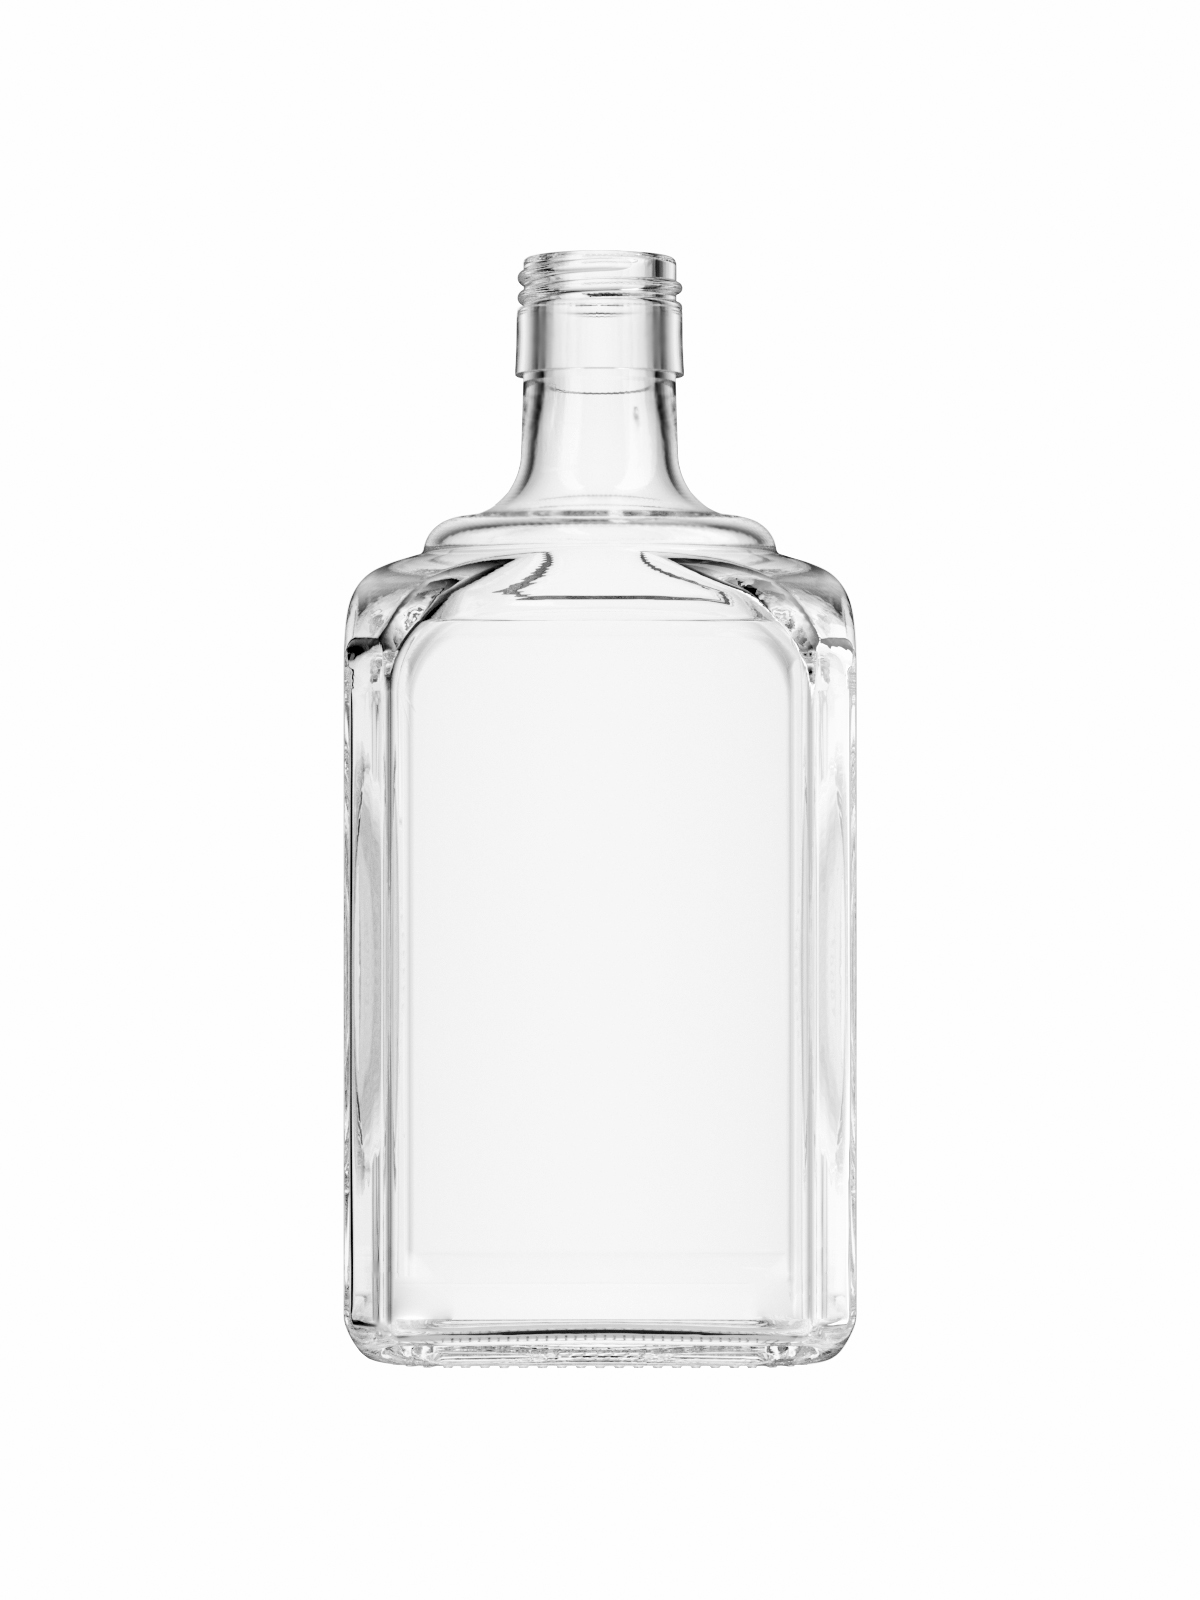 700ml Dimple Decanter - ROPP